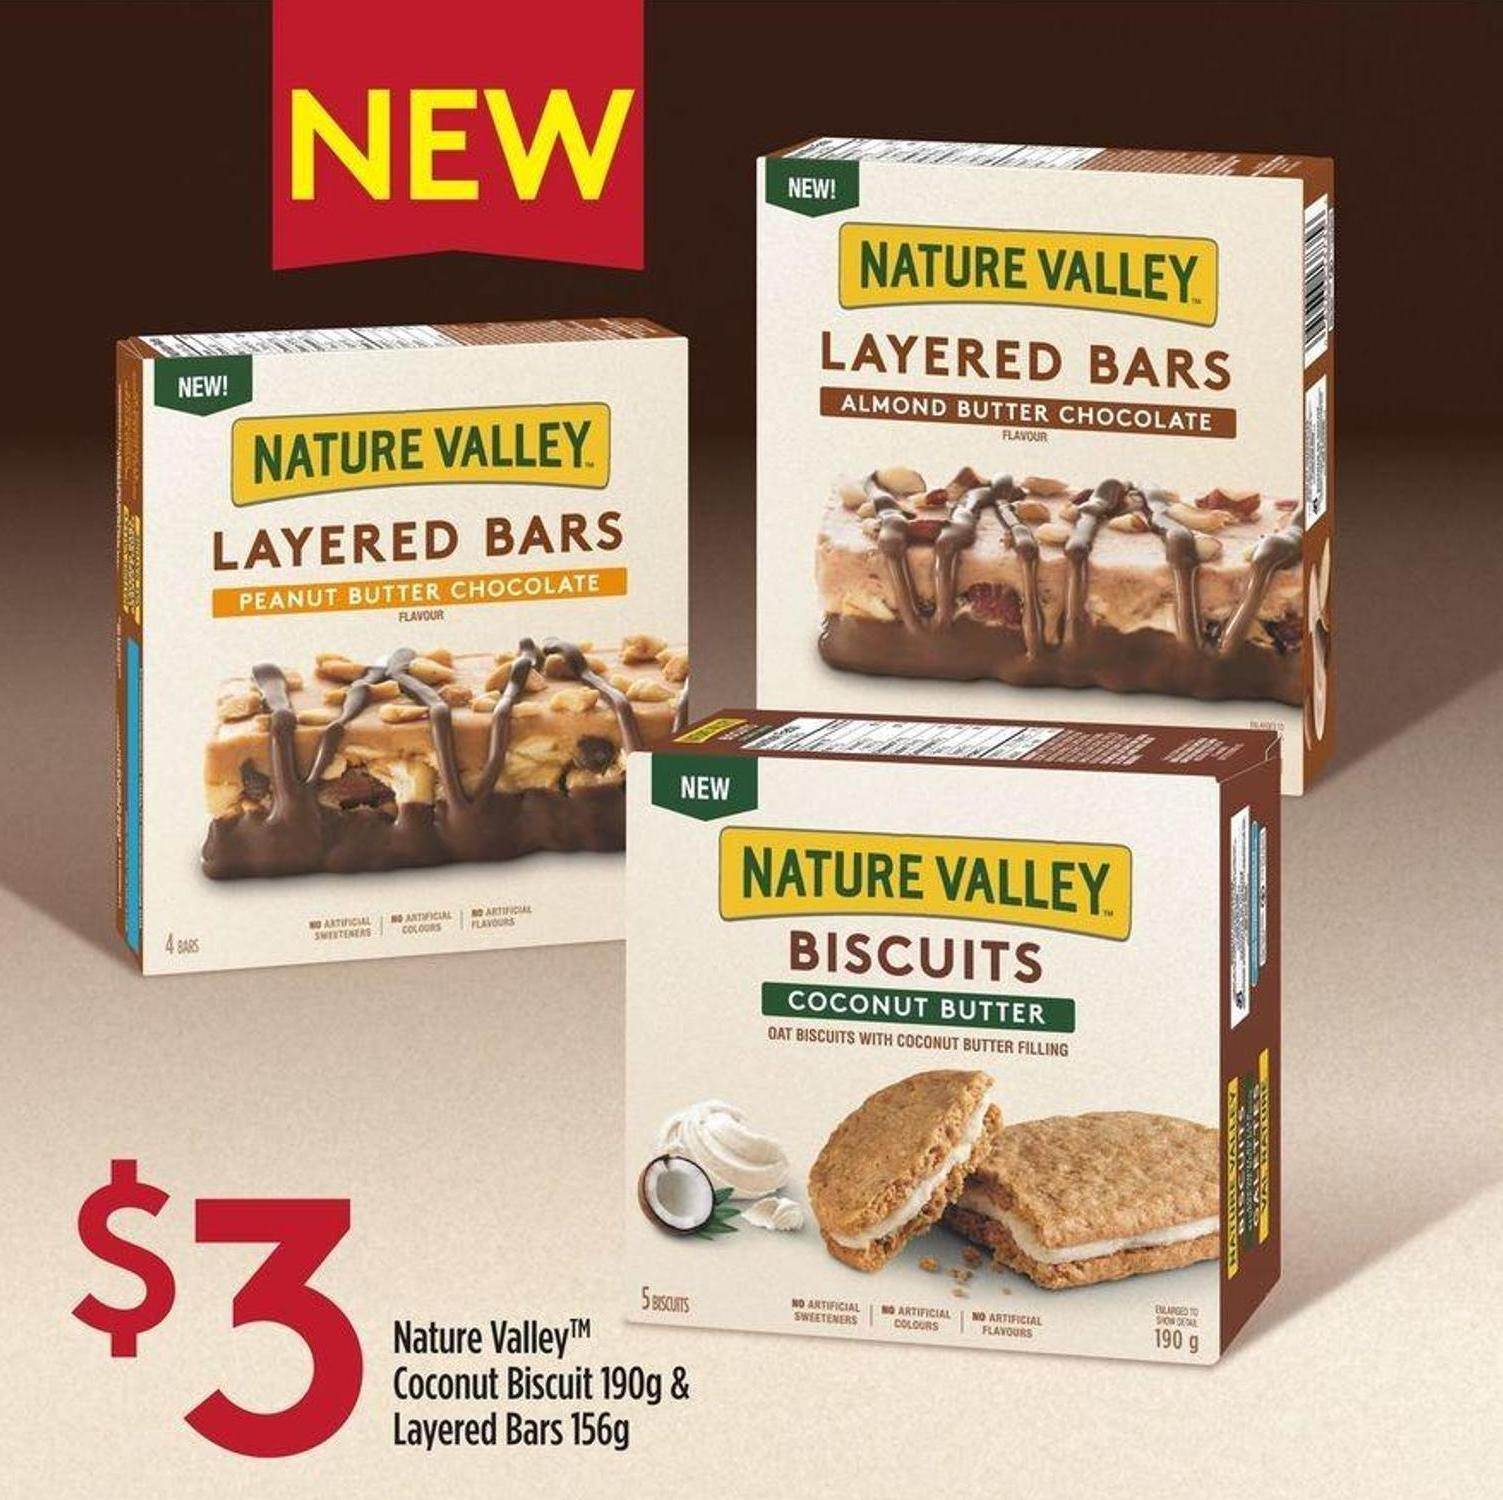 Nature Valley Coconut Biscuit 190g & Layered Bars 156g